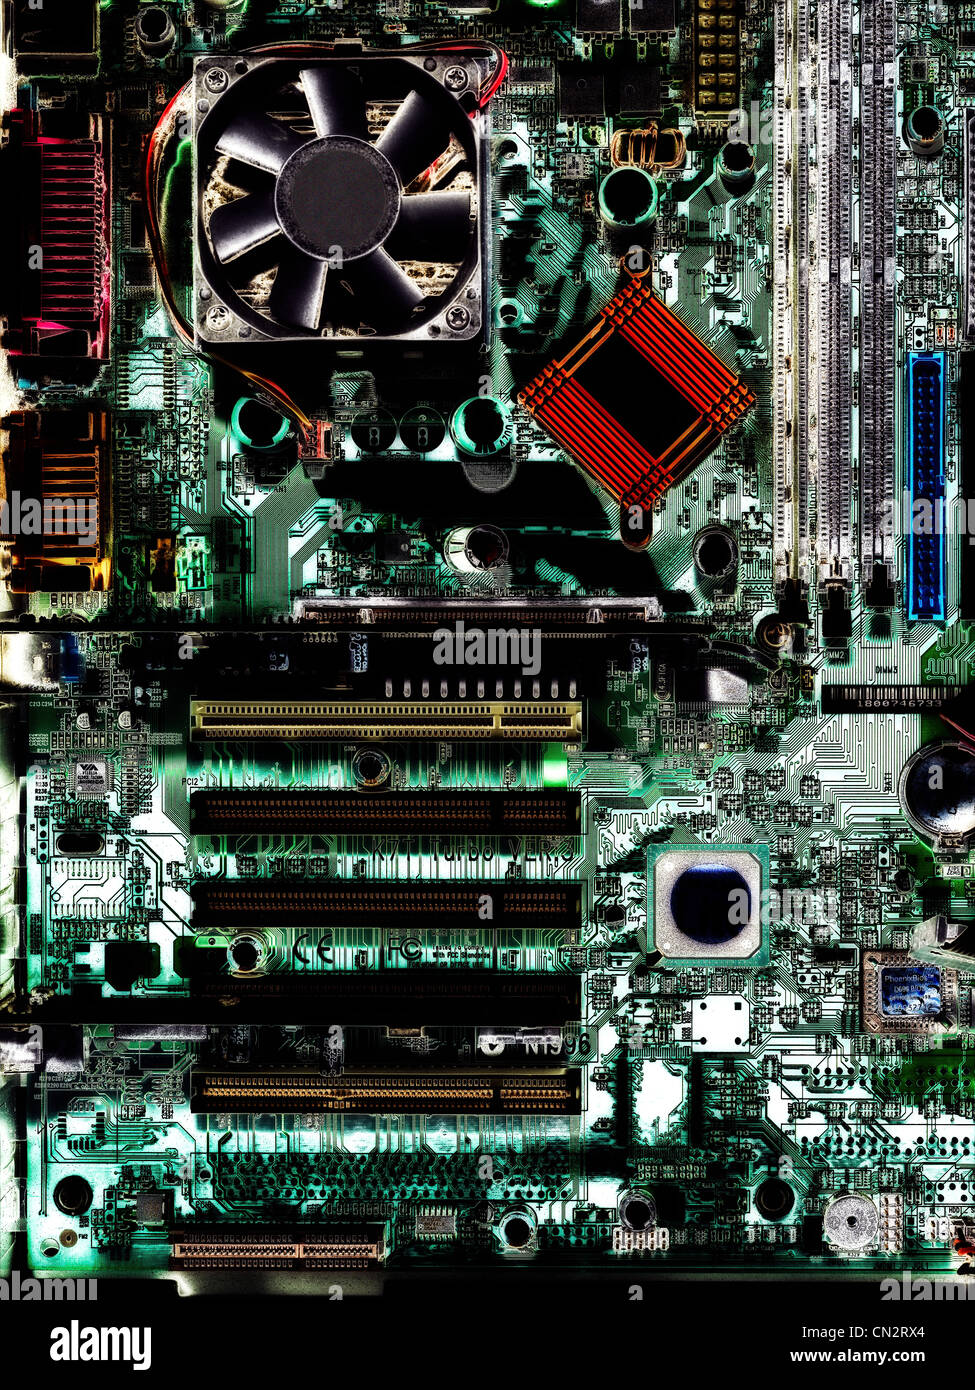 Inside a computer - Stock Image